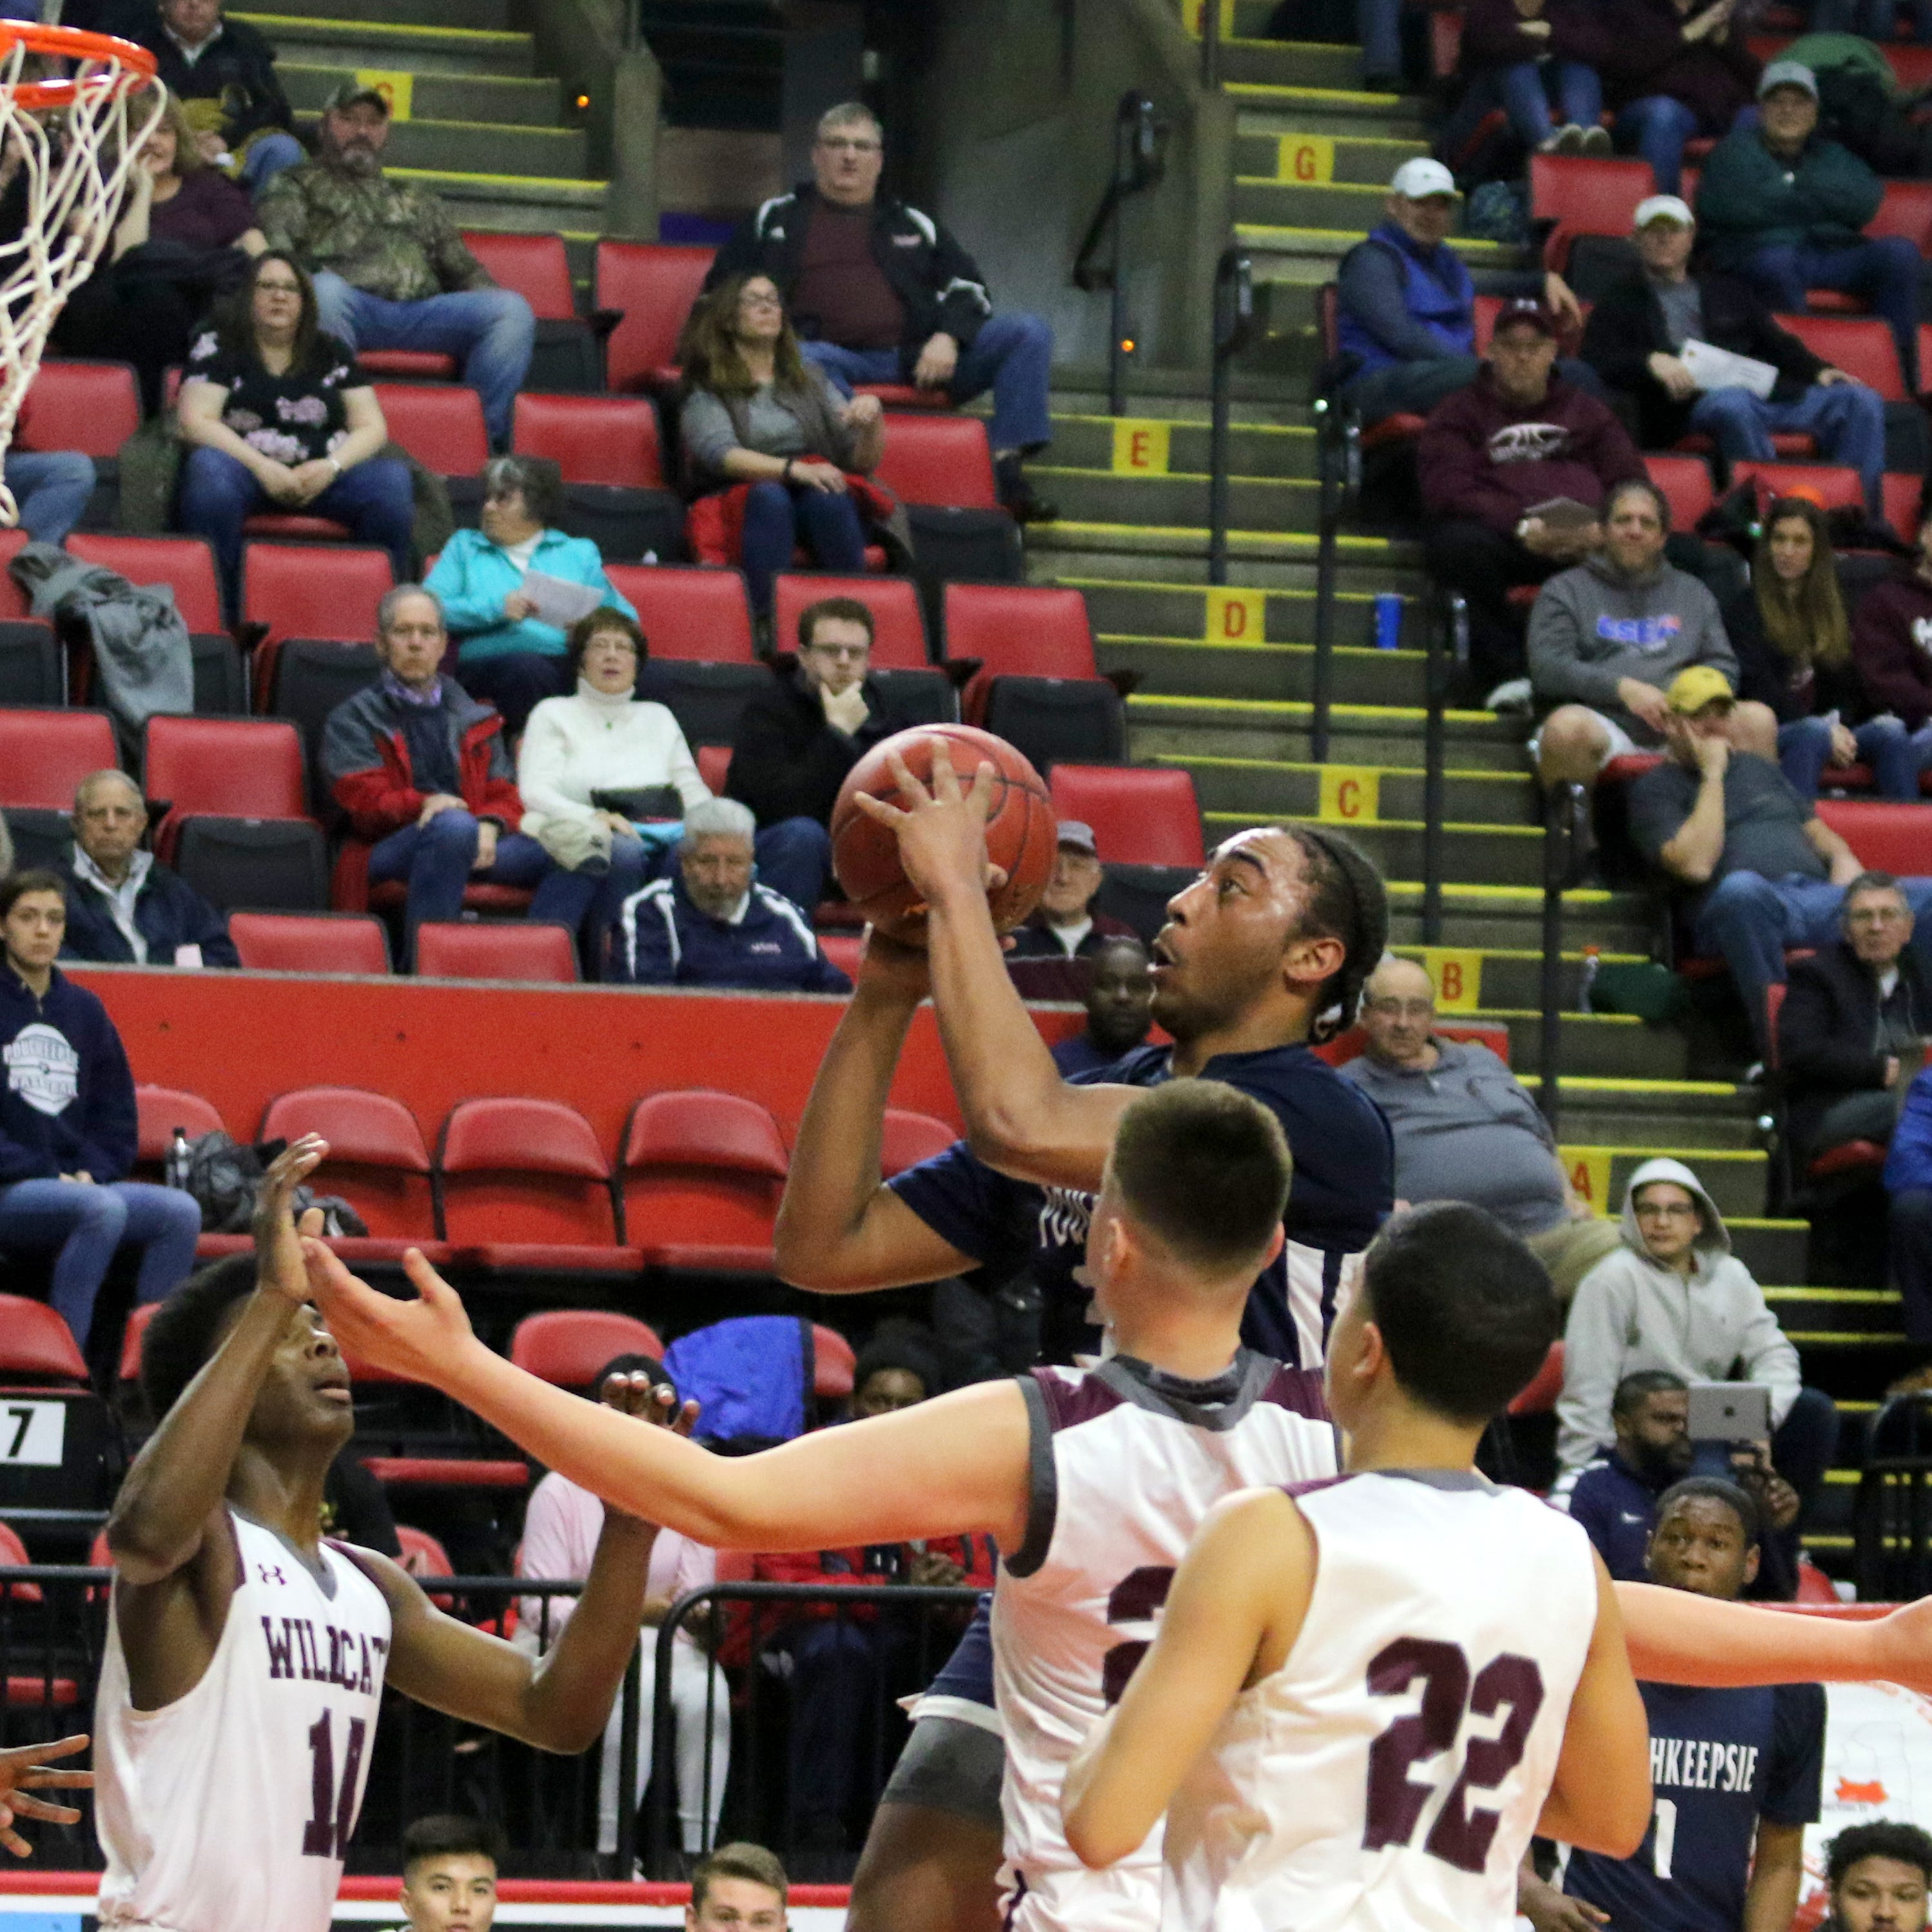 Boys basketball: Players and teams to watch for at state championships in Binghamton